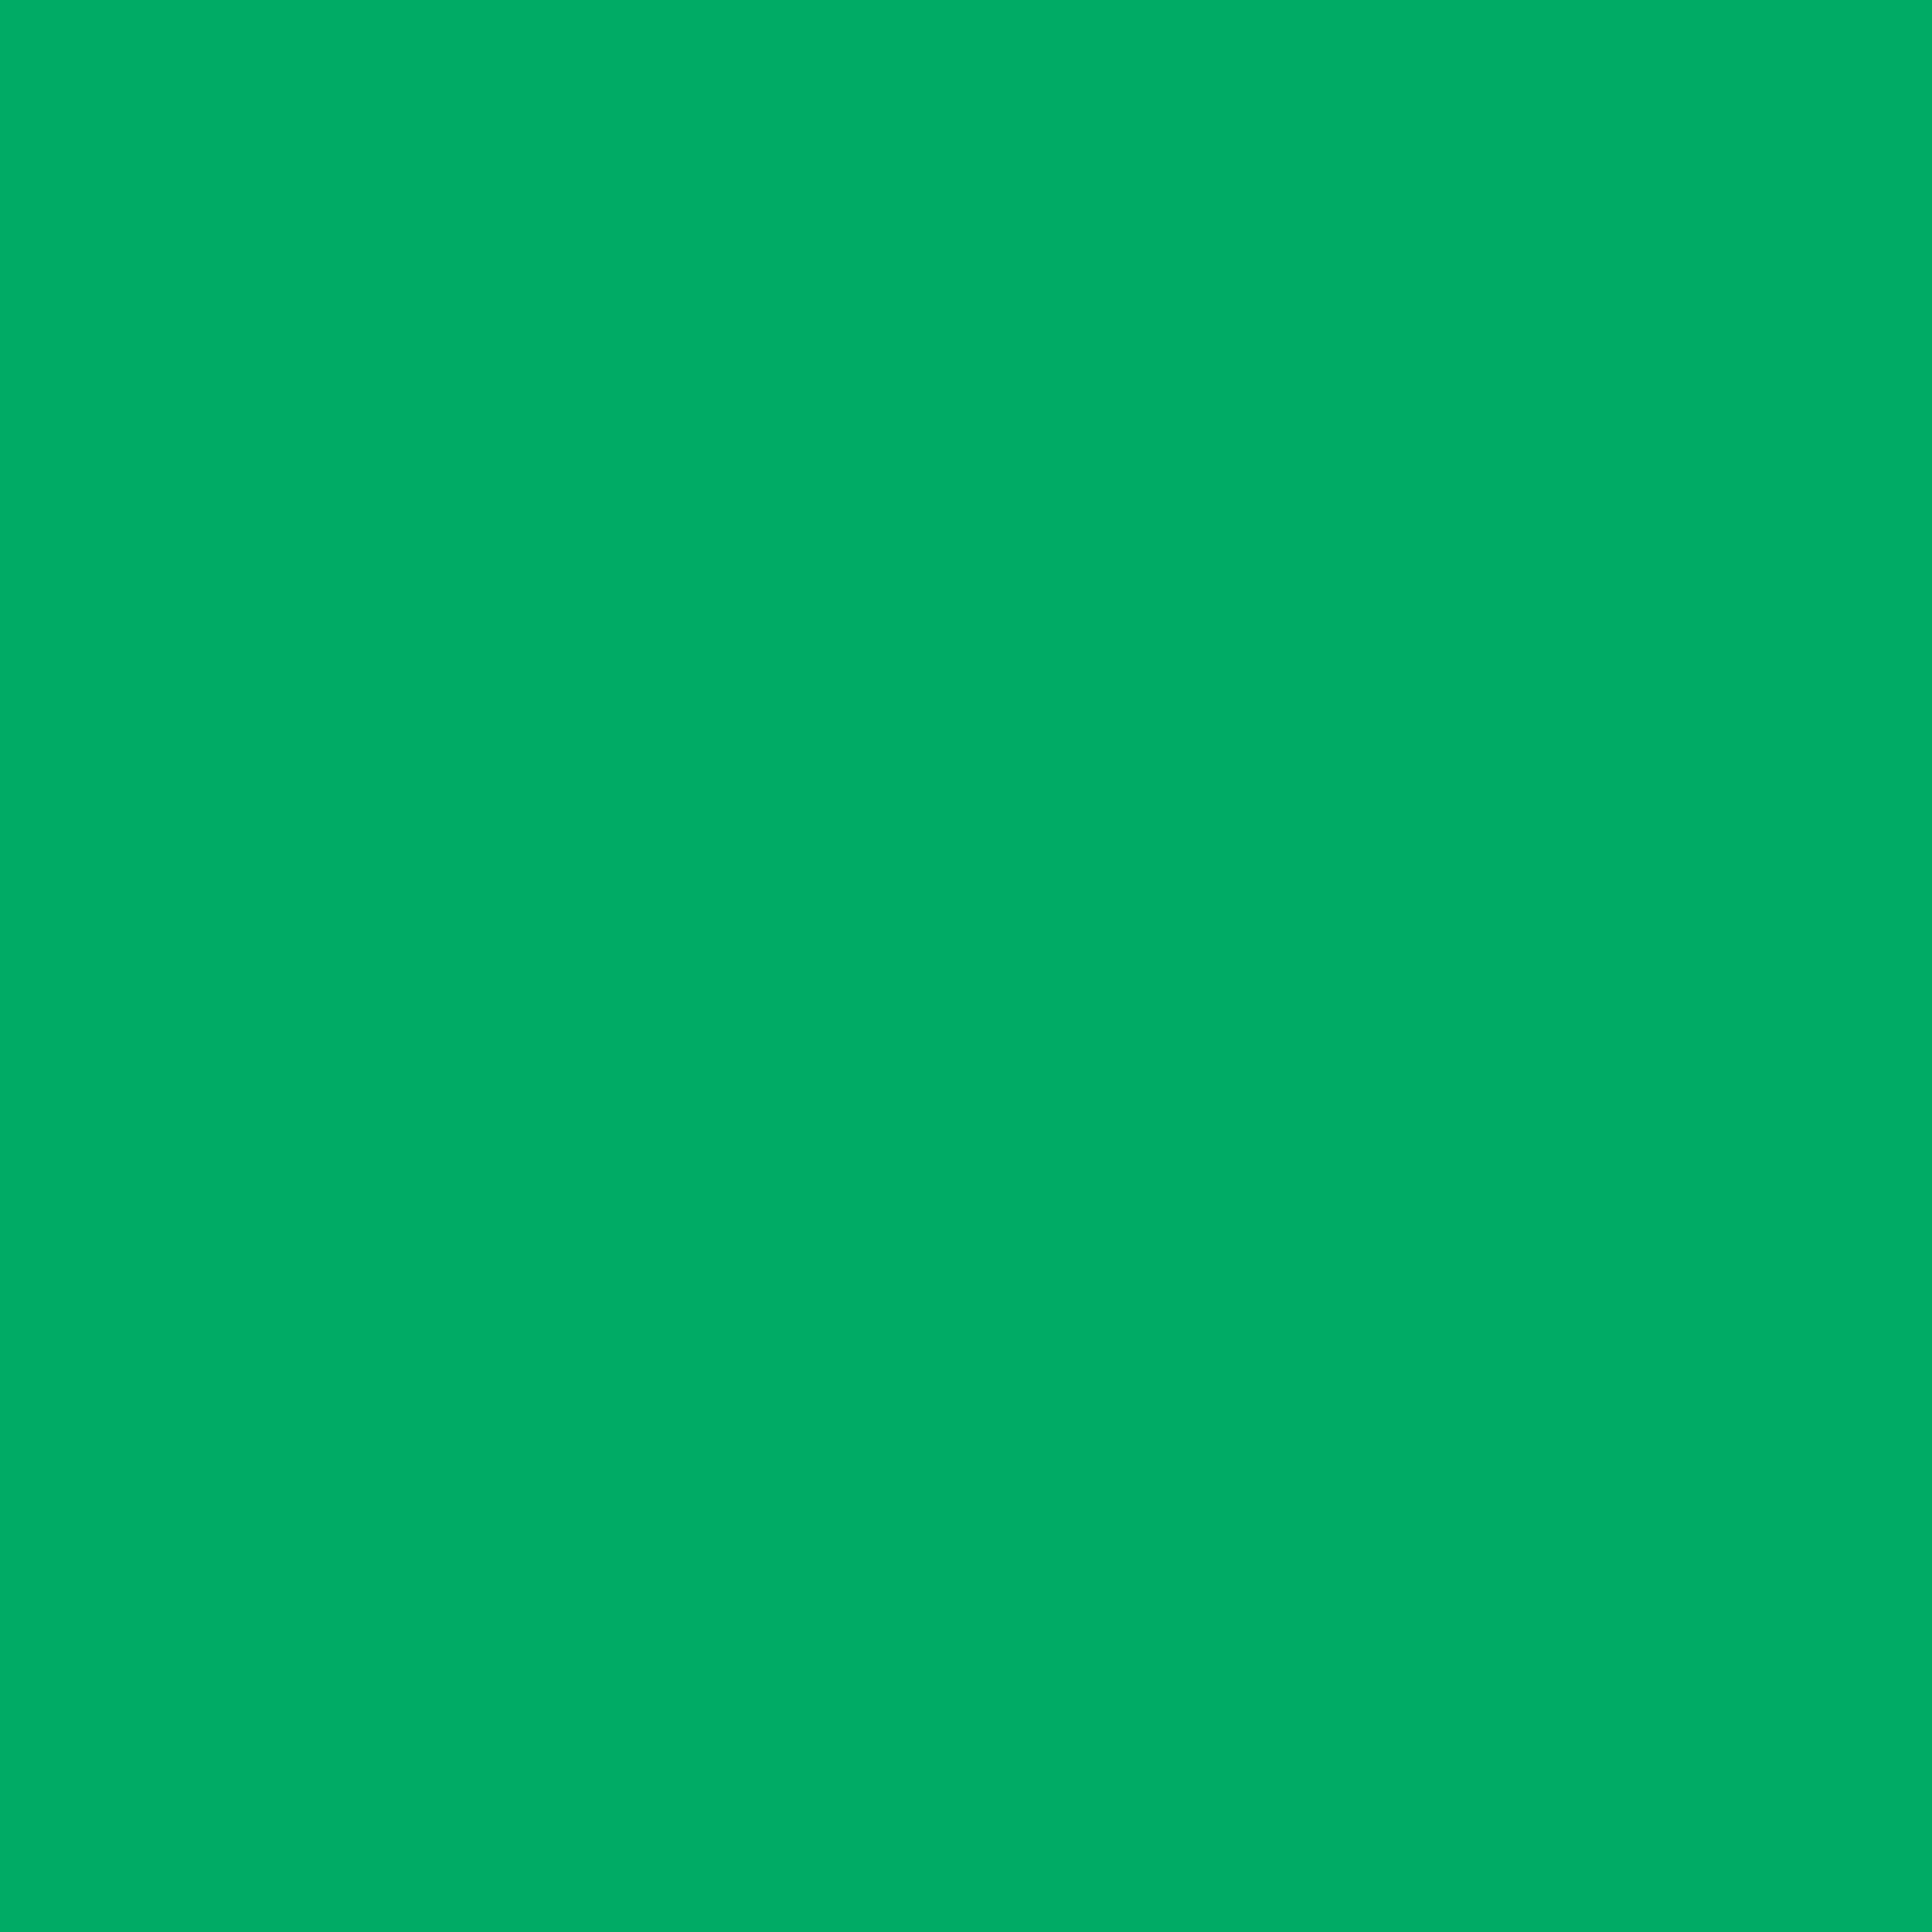 2048x2048 GO Green Solid Color Background